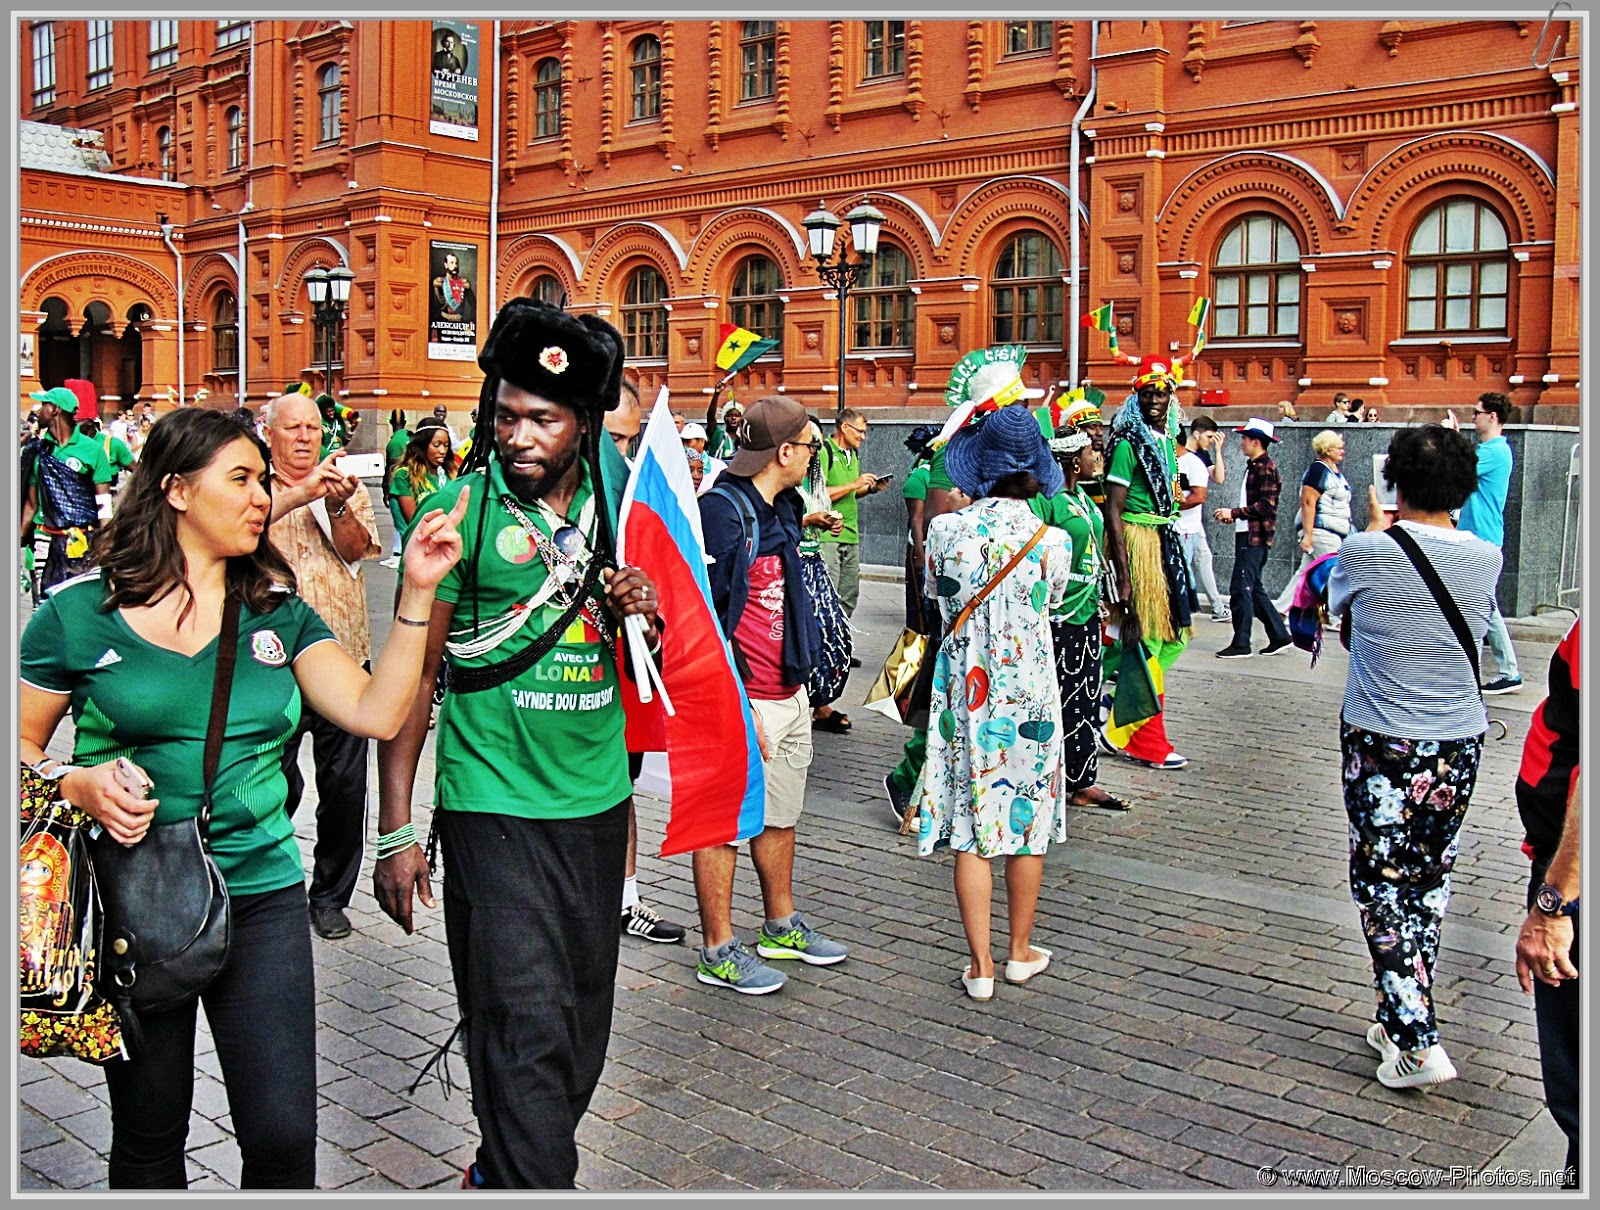 Football fans in Moscow during the 2018 FIFA World Cup